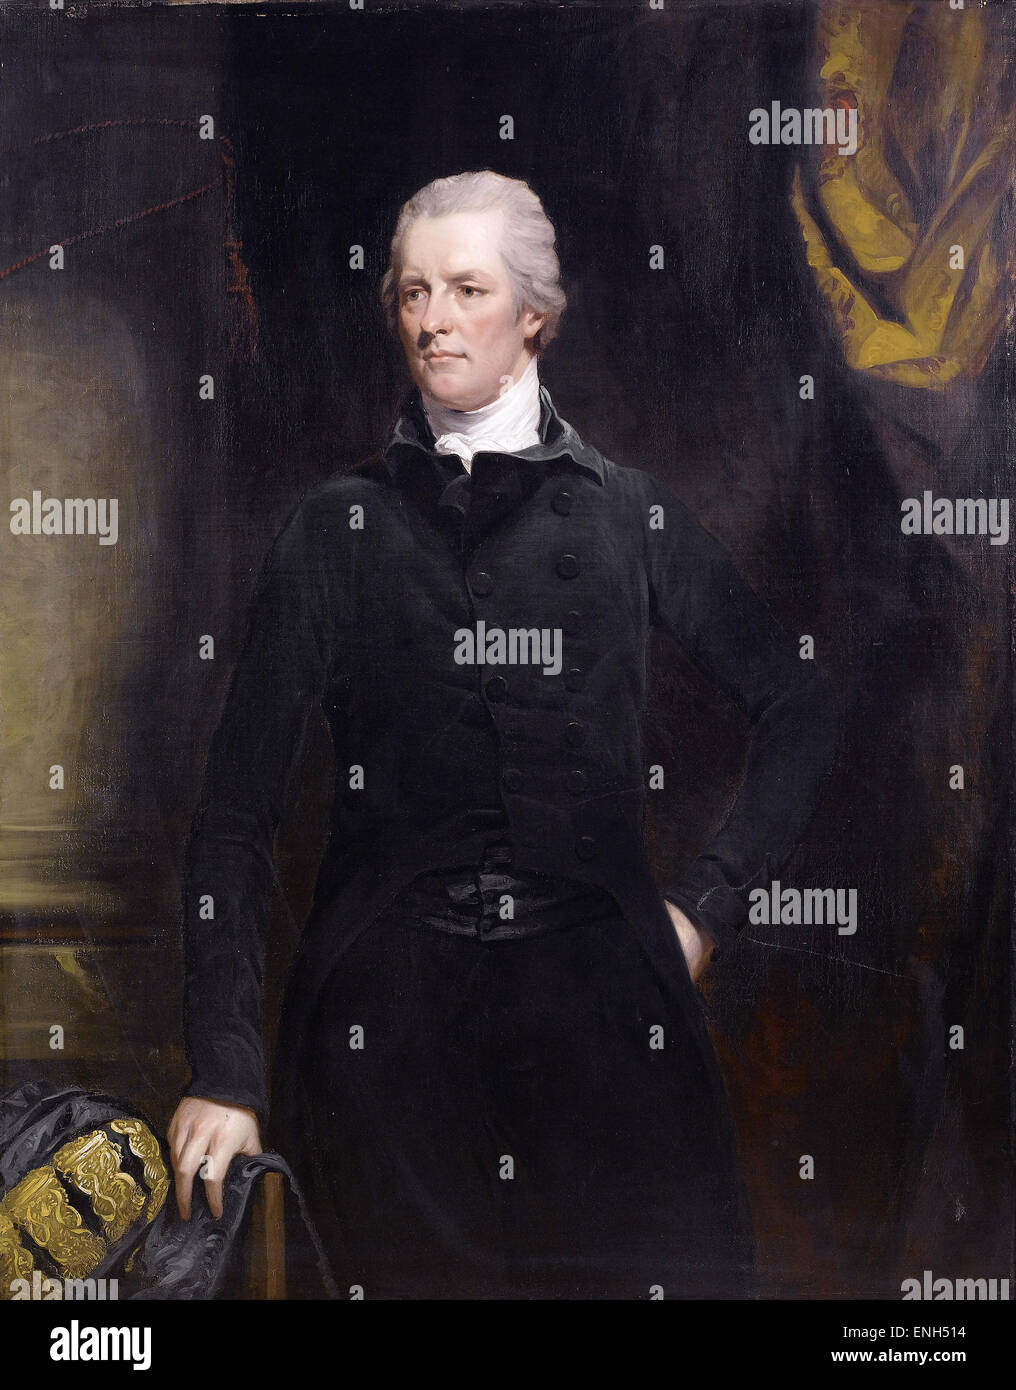 William Pitt the Younger youngest Prime Minister of Great Britain in 1783 - Stock Image